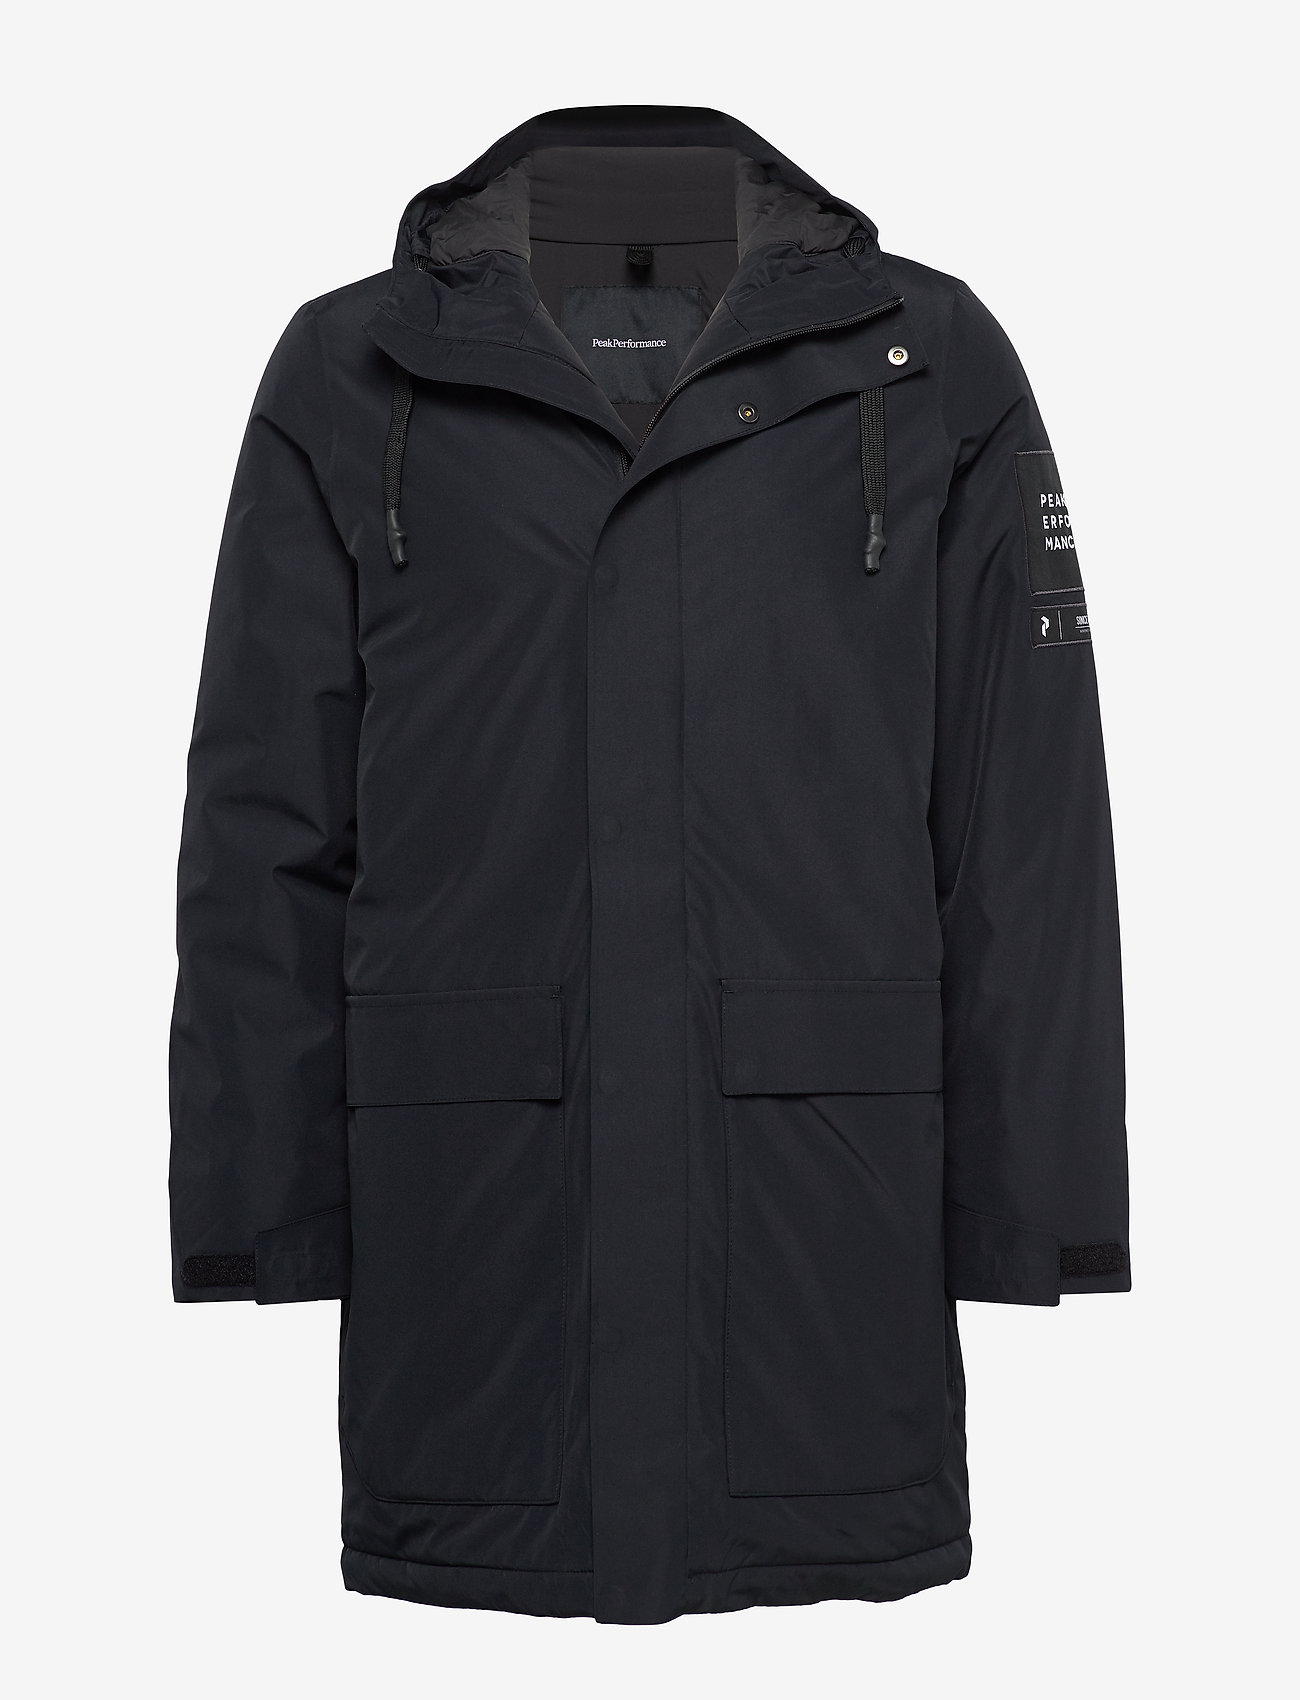 Peak Performance - UNIT J - insulated jackets - black - 0